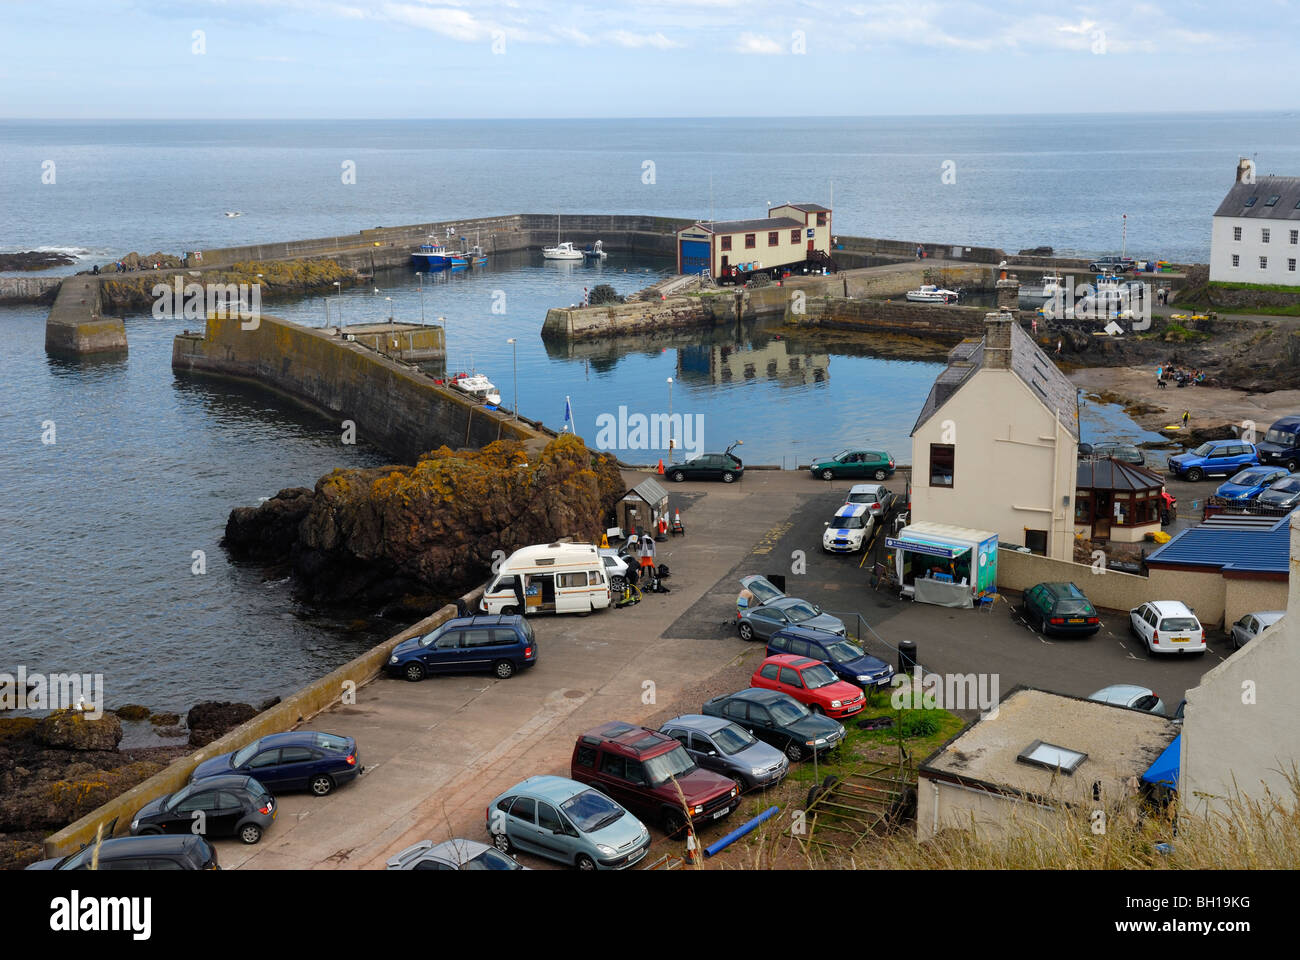 St Abbs harbour, Borders, Scotland - Stock Image